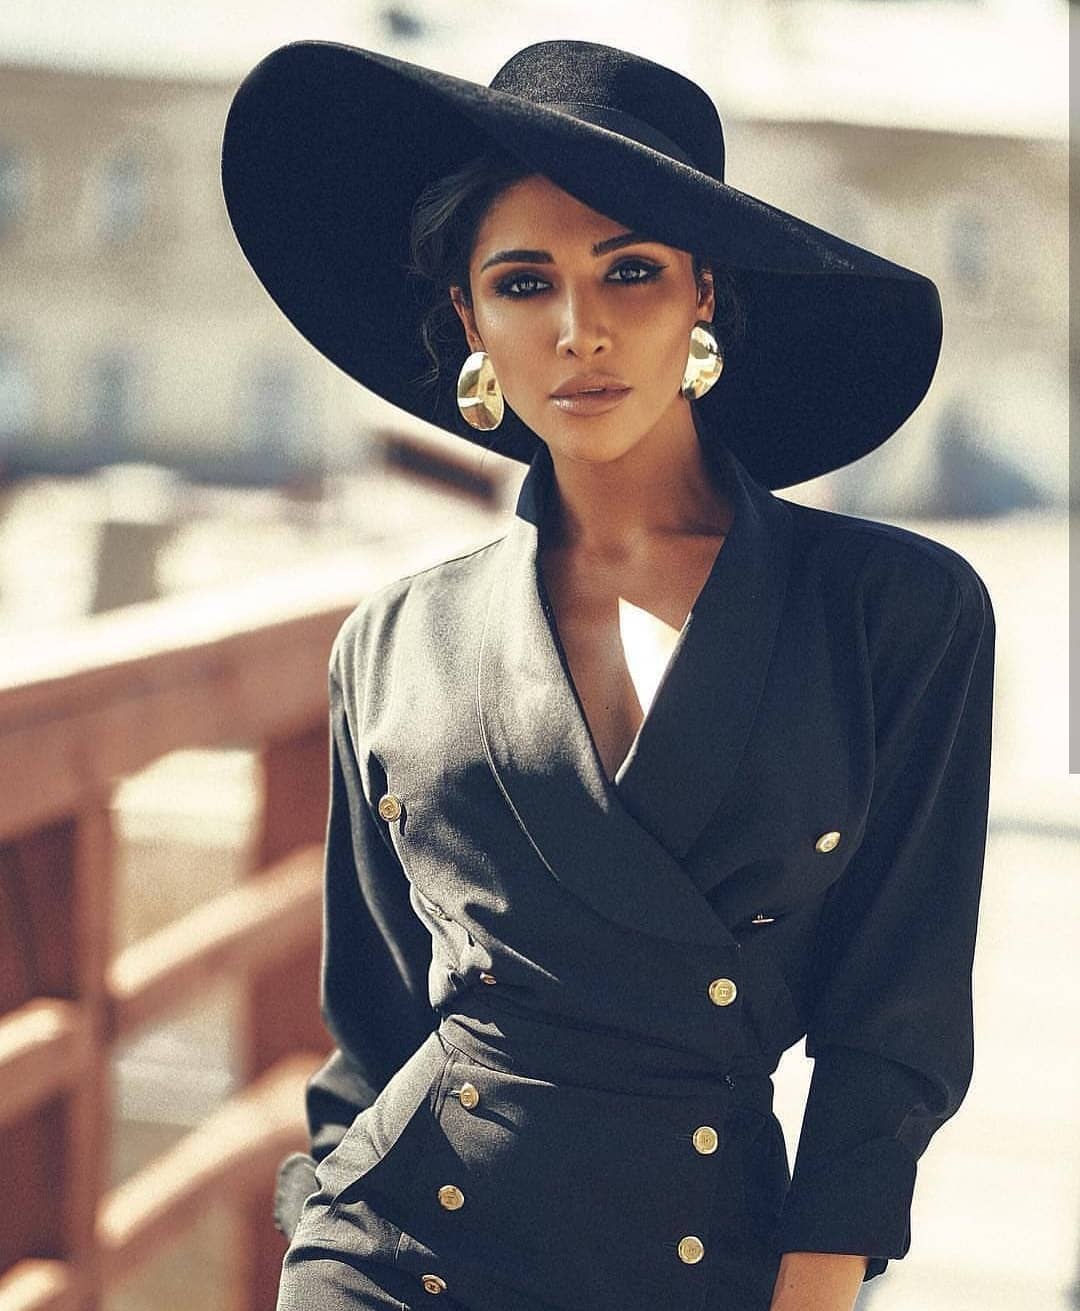 Blazer Dress And Wide Brim Hat: All Black Outfit Idea For Spring 2020